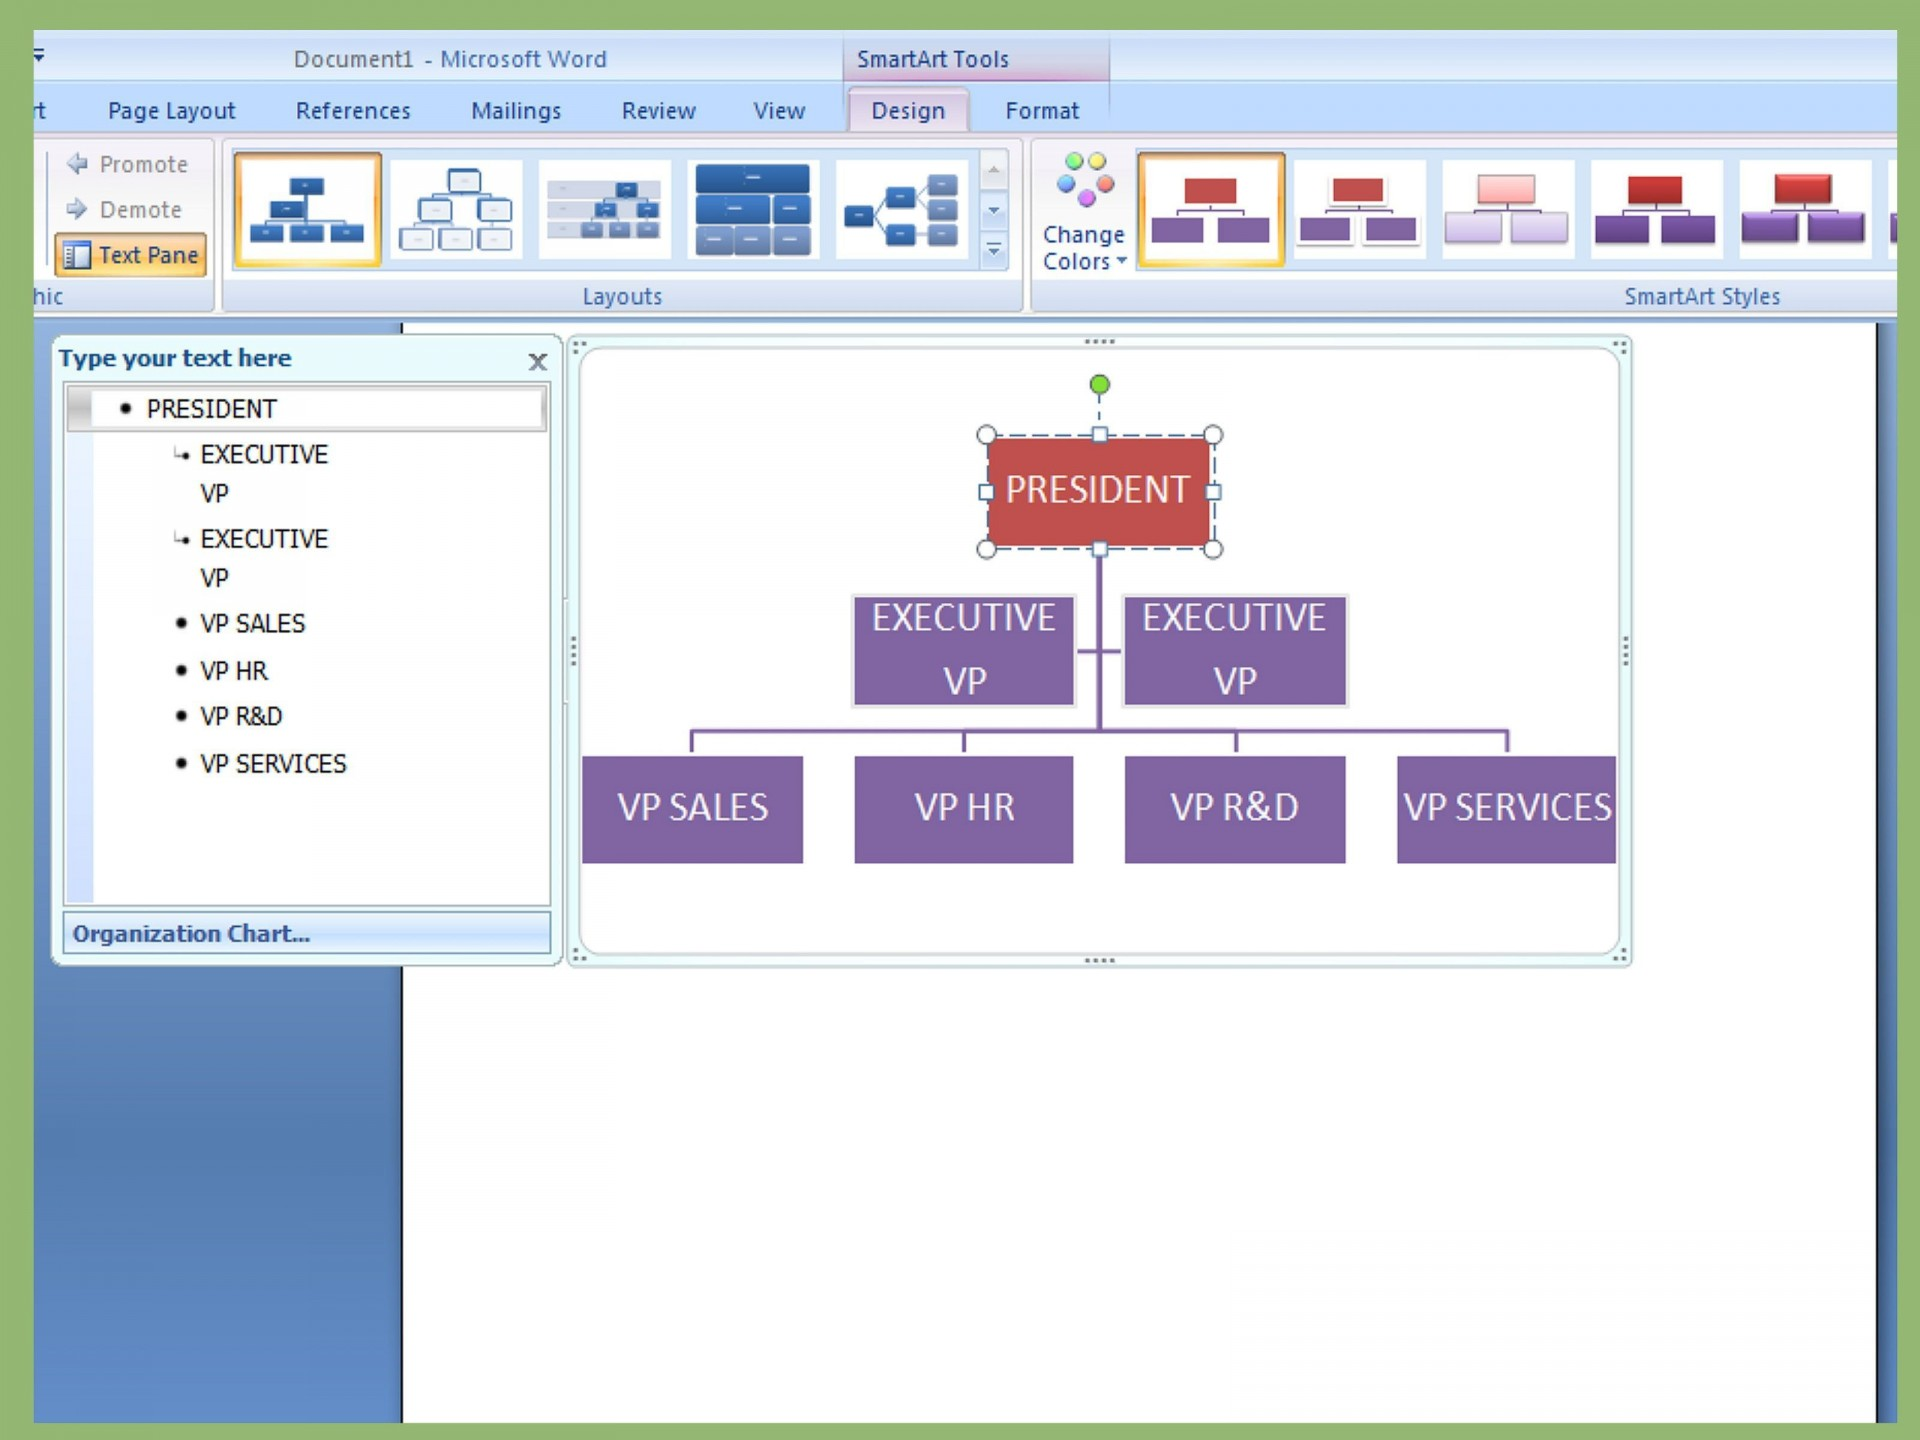 001 Archaicawful Organizational Chart In Microsoft Powerpoint 2010 Image 1920